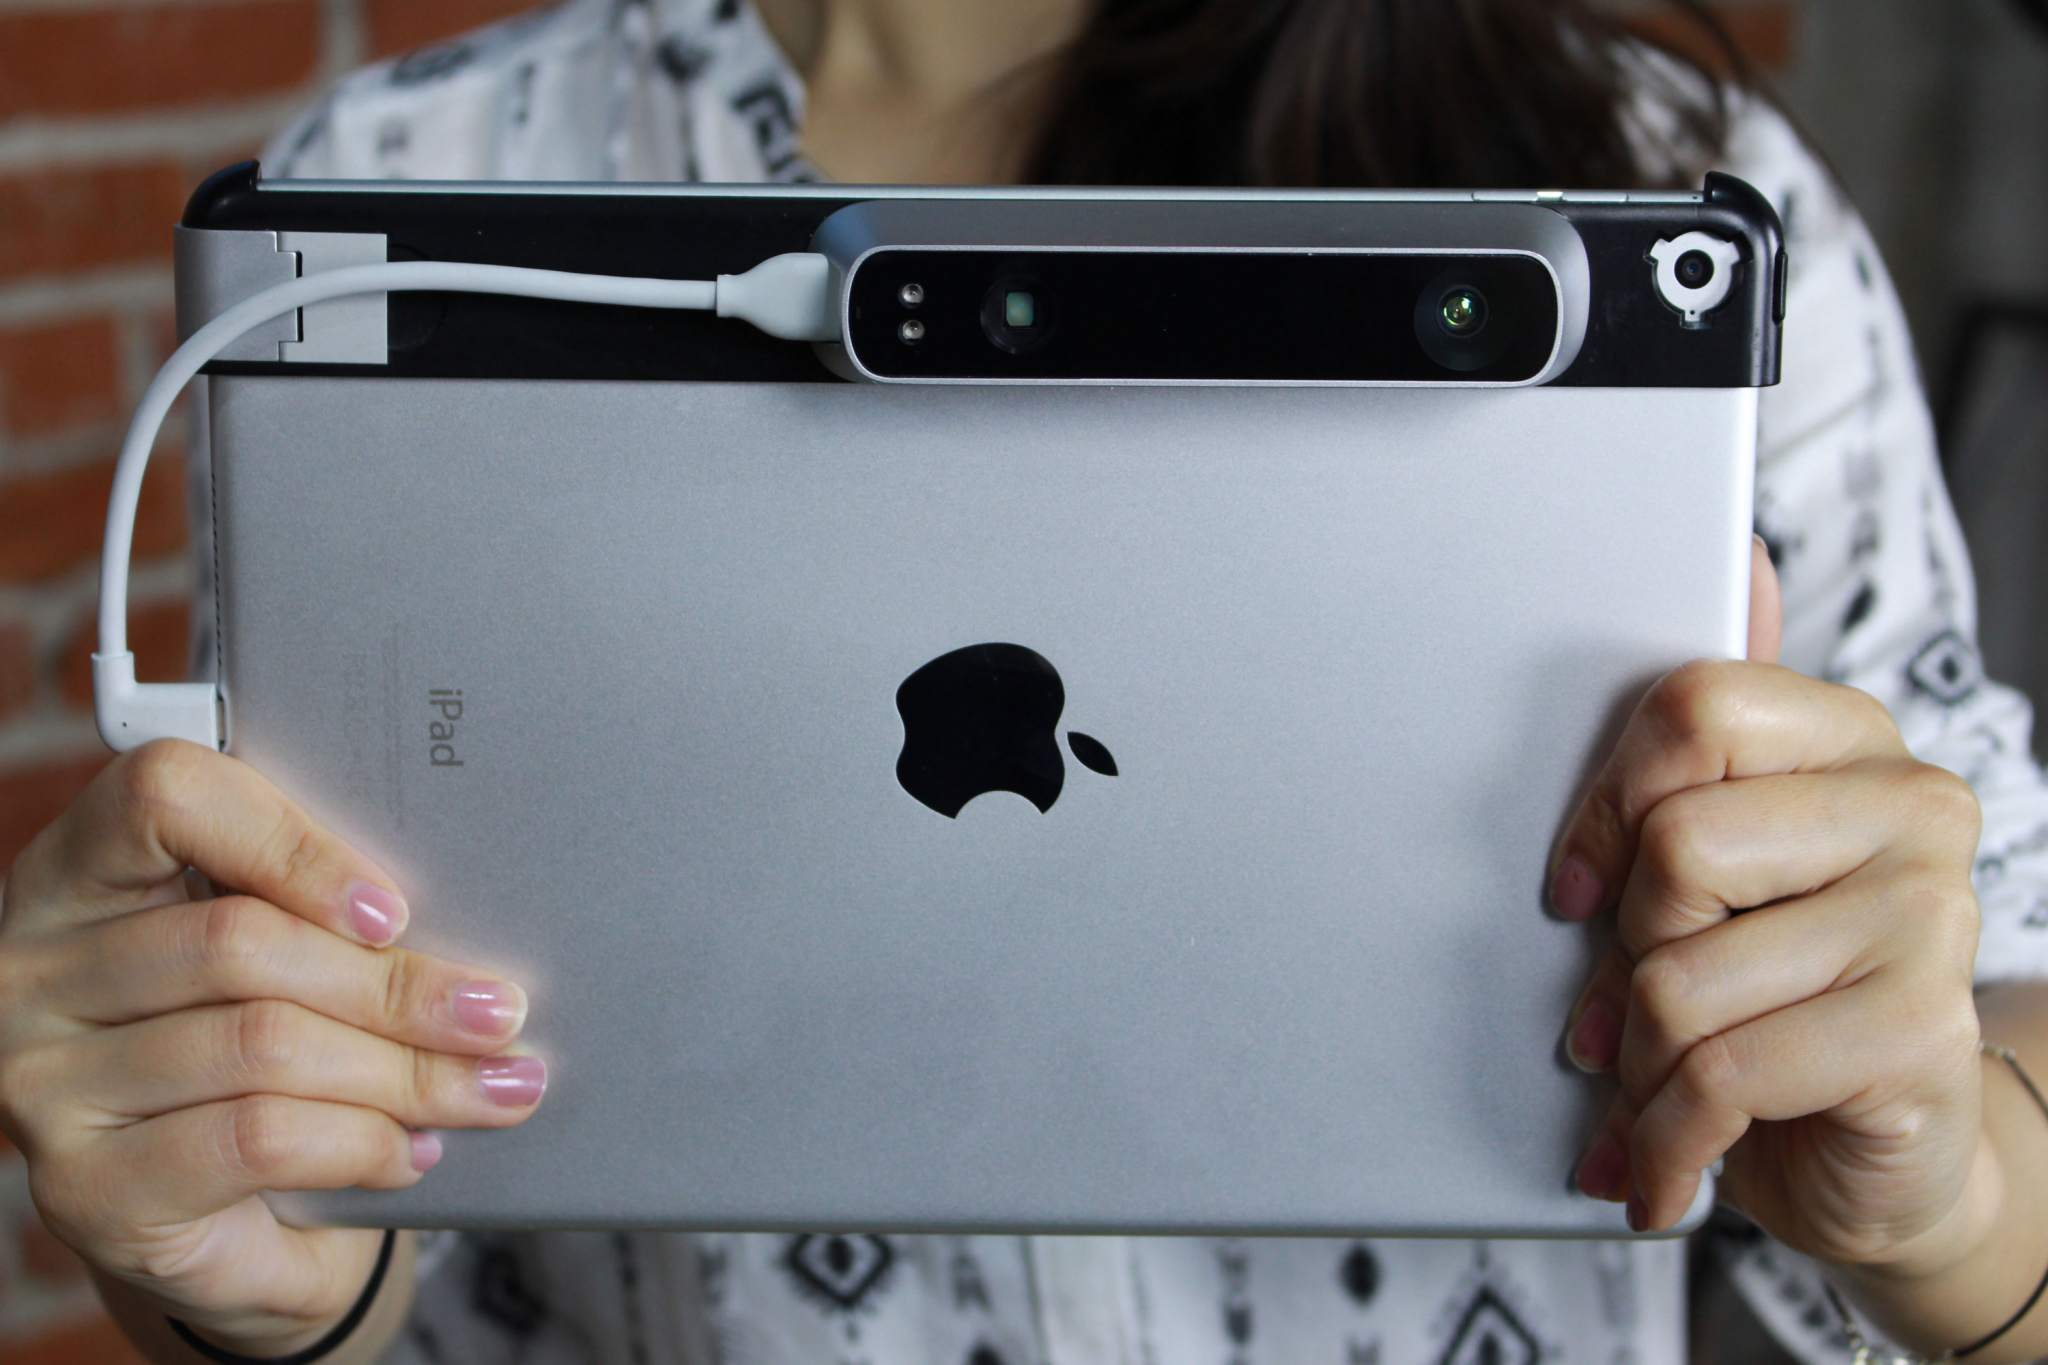 iPad with Structure sensor attached. Image via Occipital.